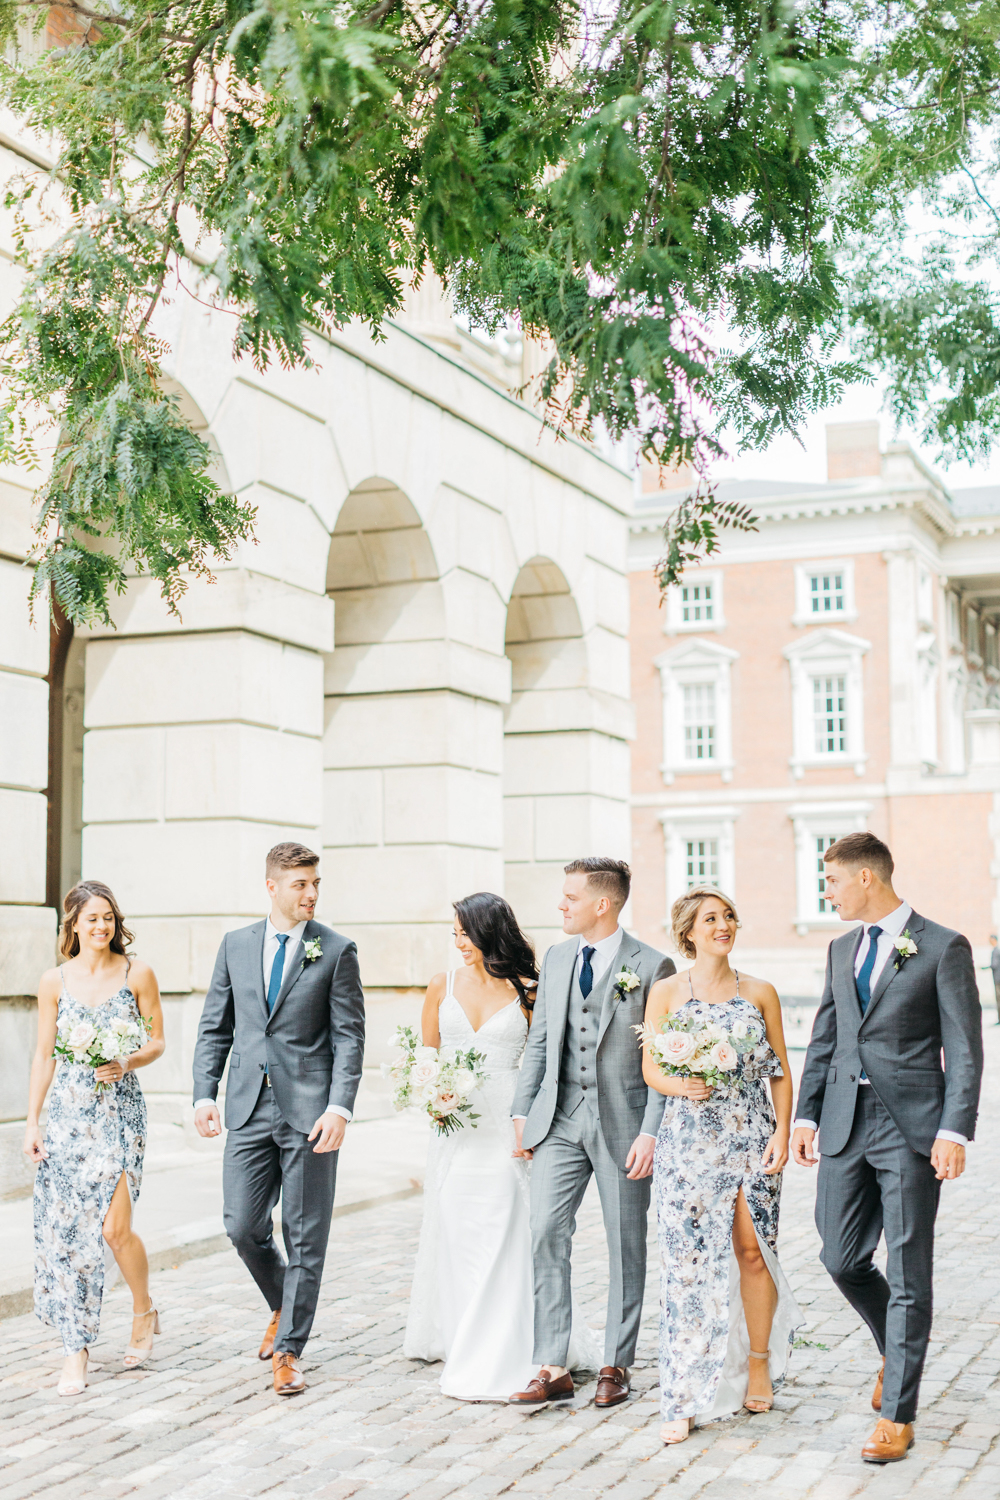 Bride and groom with bridal party walking at Osgoode hall